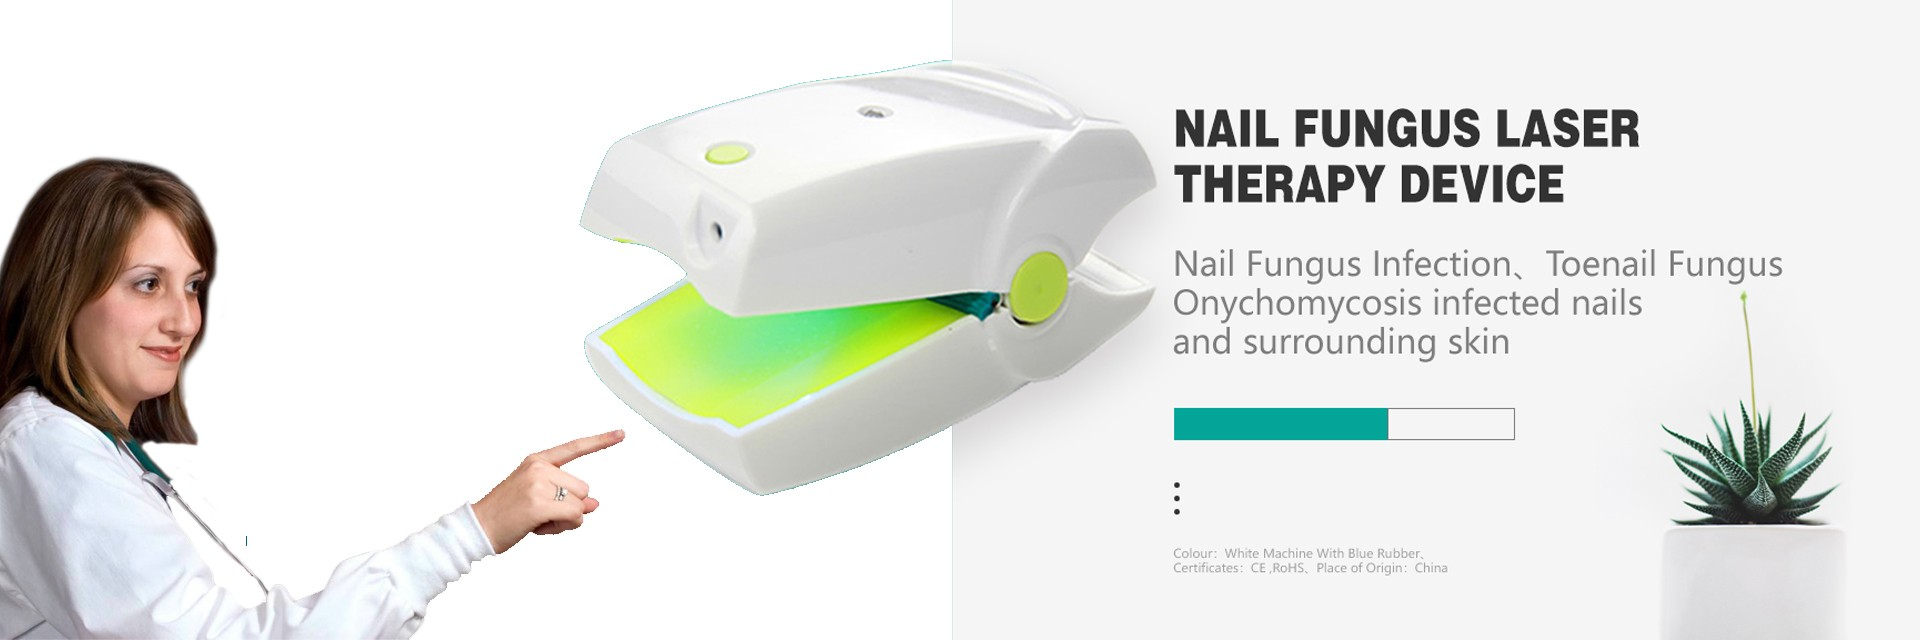 Laser For Nail Fungus Treatment